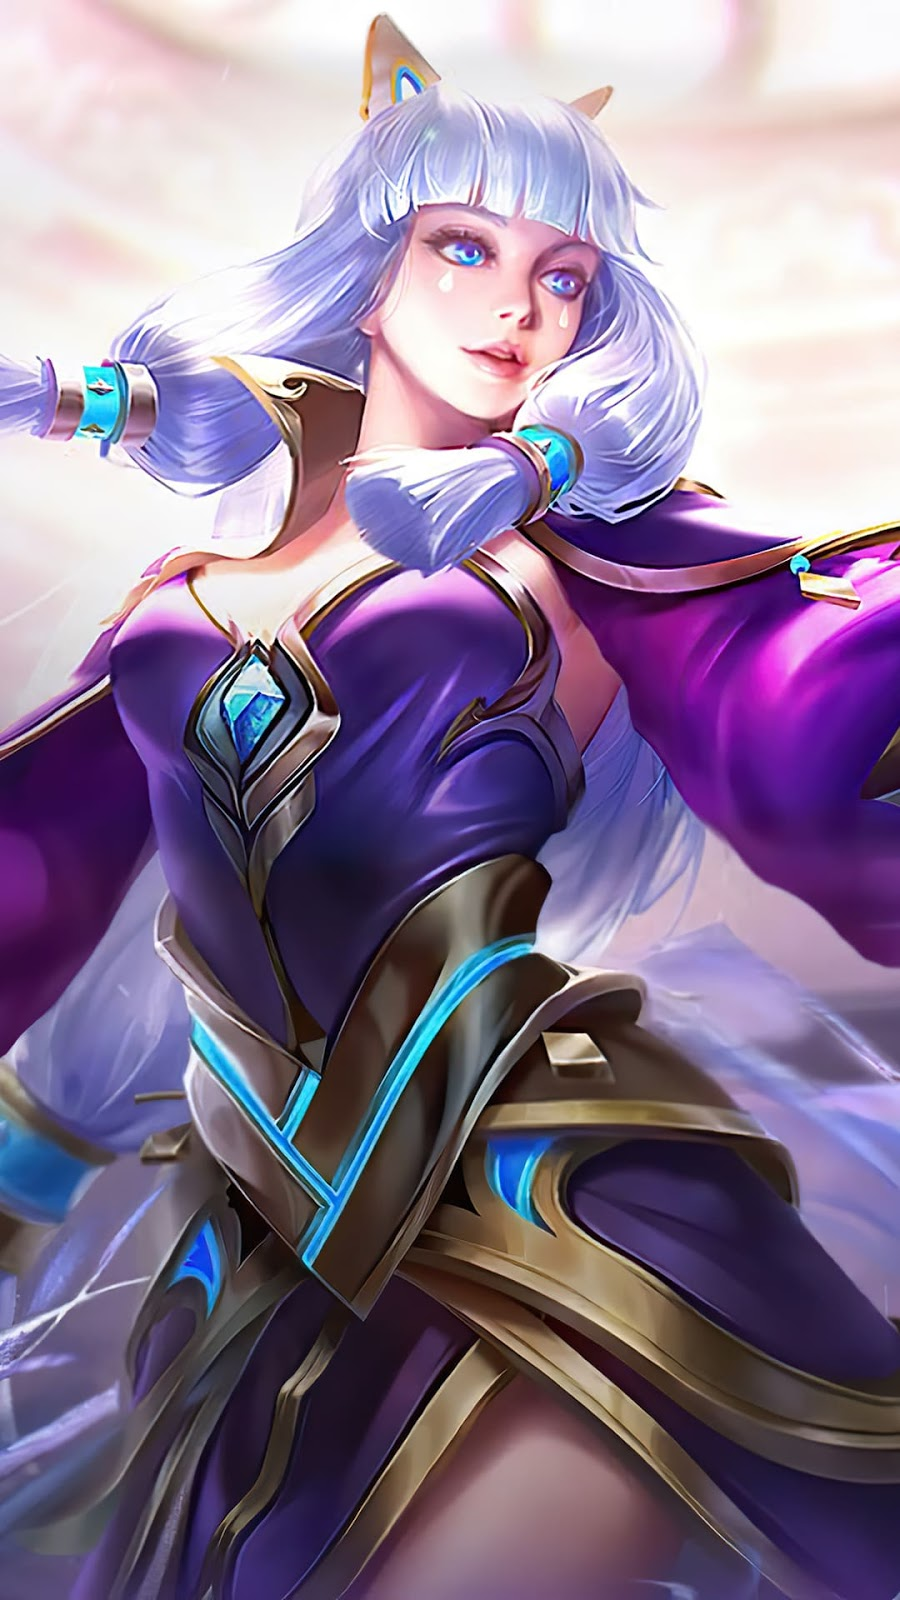 Wallpaper Guinevere Amethyst Dance Skin Mobile Legends HD for Android and iOS